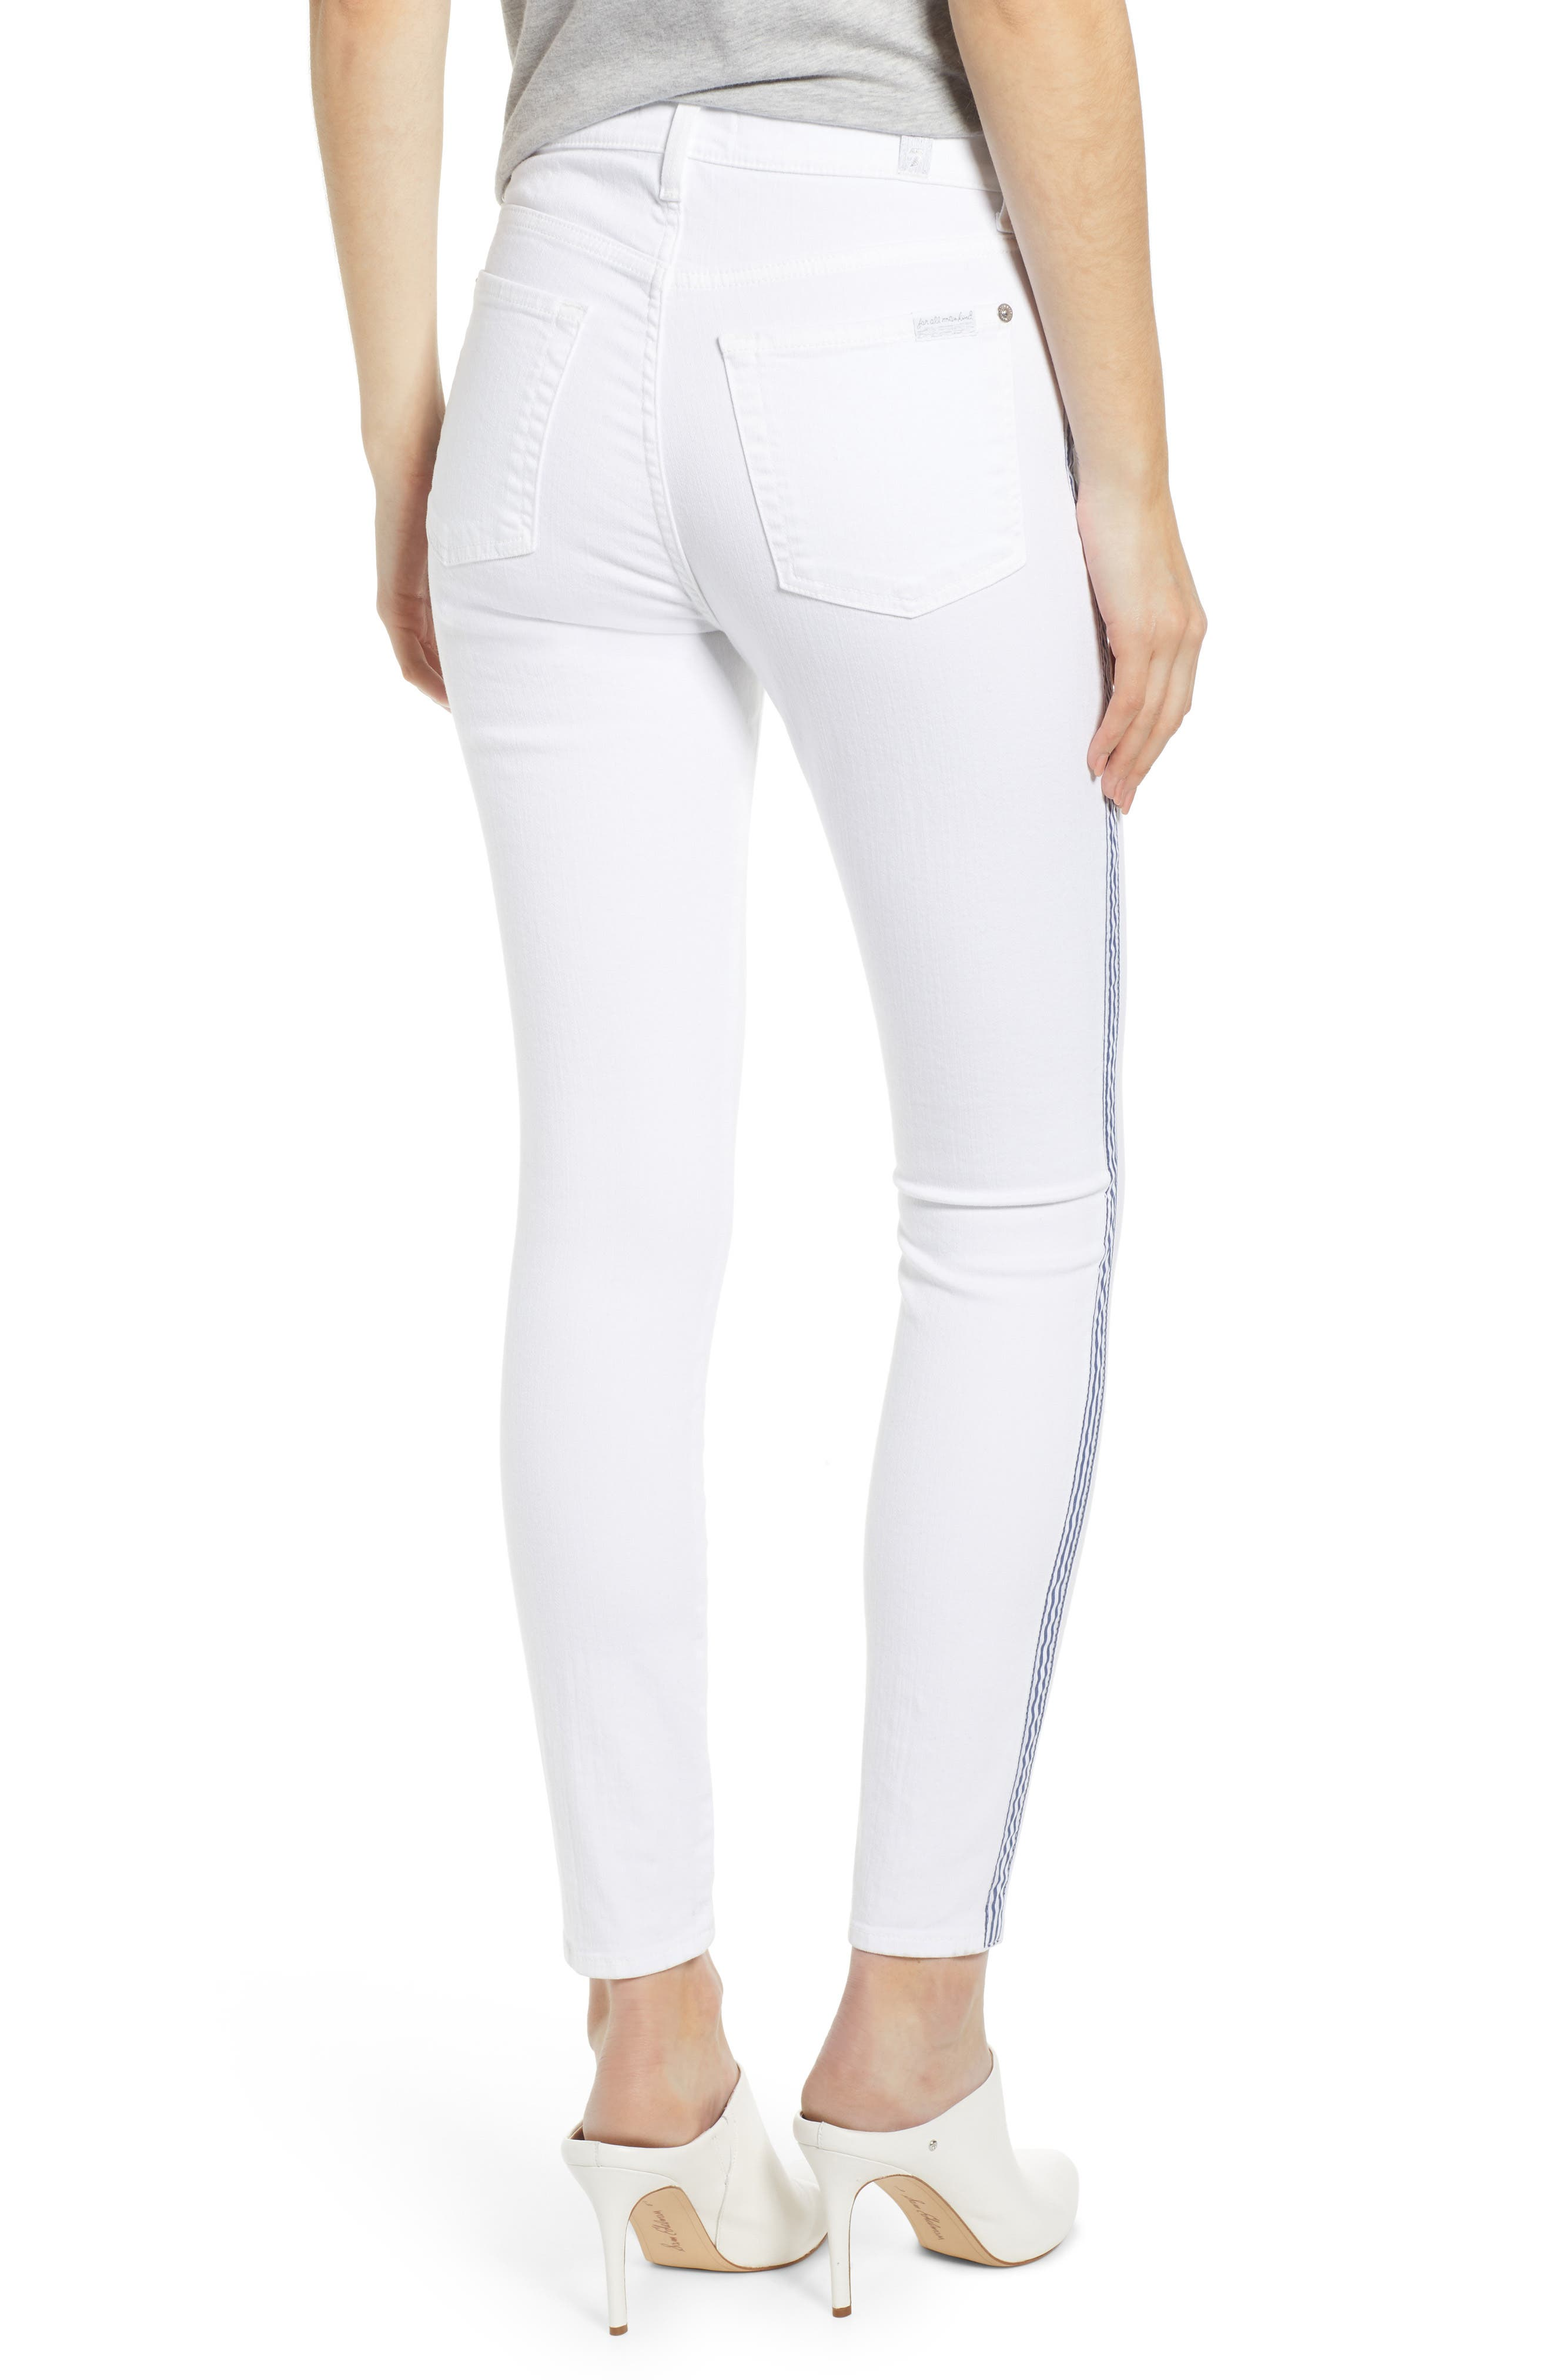 7 FOR ALL MANKIND<SUP>®</SUP>, Side Stripe High Waist Ankle Skinny Jeans, Alternate thumbnail 2, color, WHITE RUNWAY DENIM